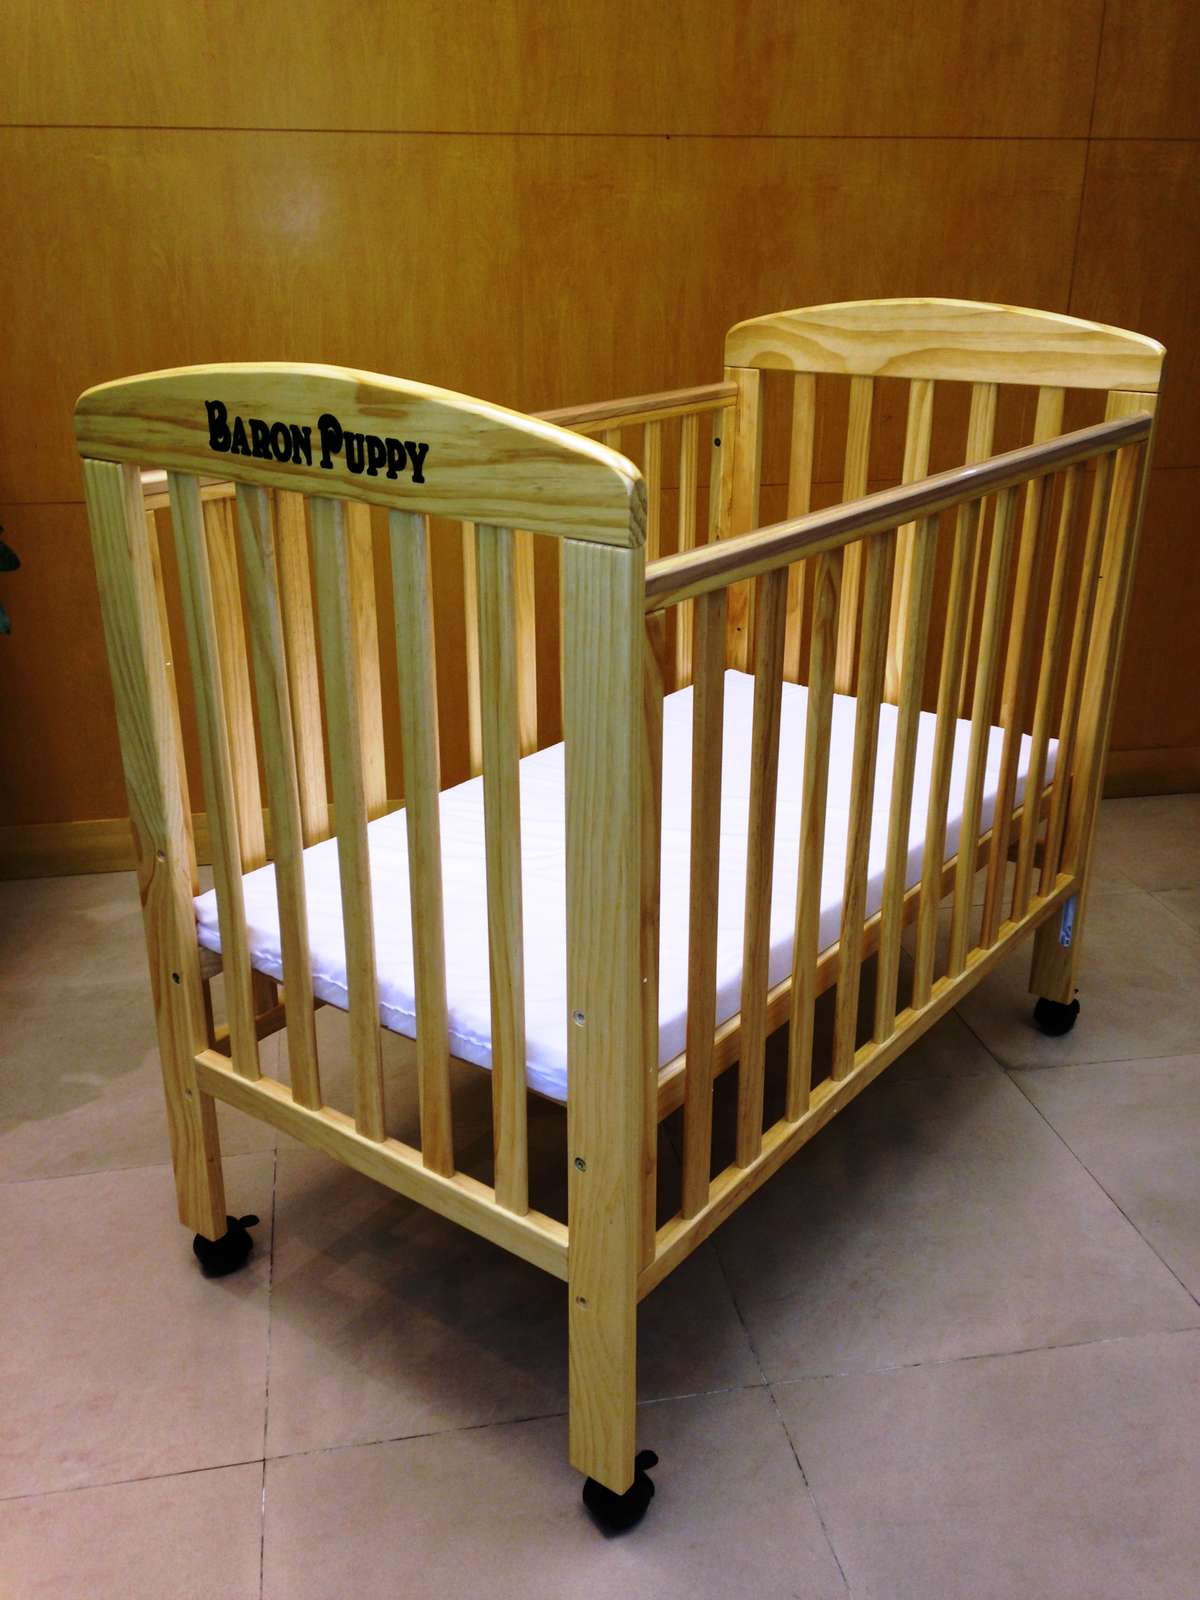 Baron puppy baby bed